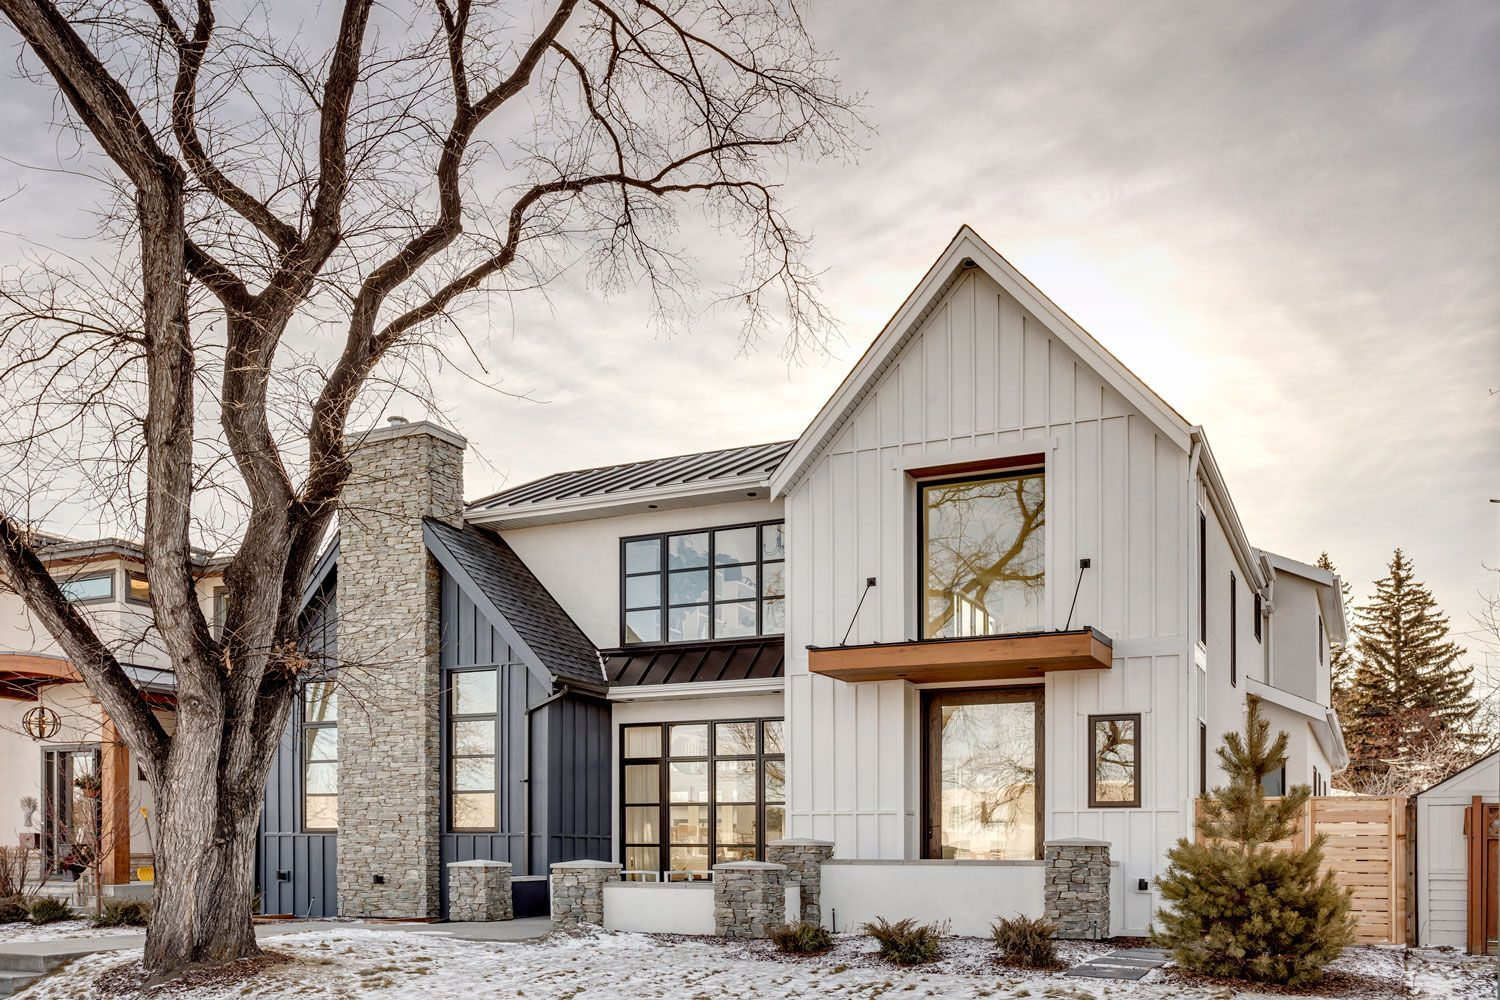 Roofing And Canopy Details Modern Farmhouse Style In 2020 Farmhouse Exterior Modern Farmhouse Exterior Modern Farmhouse